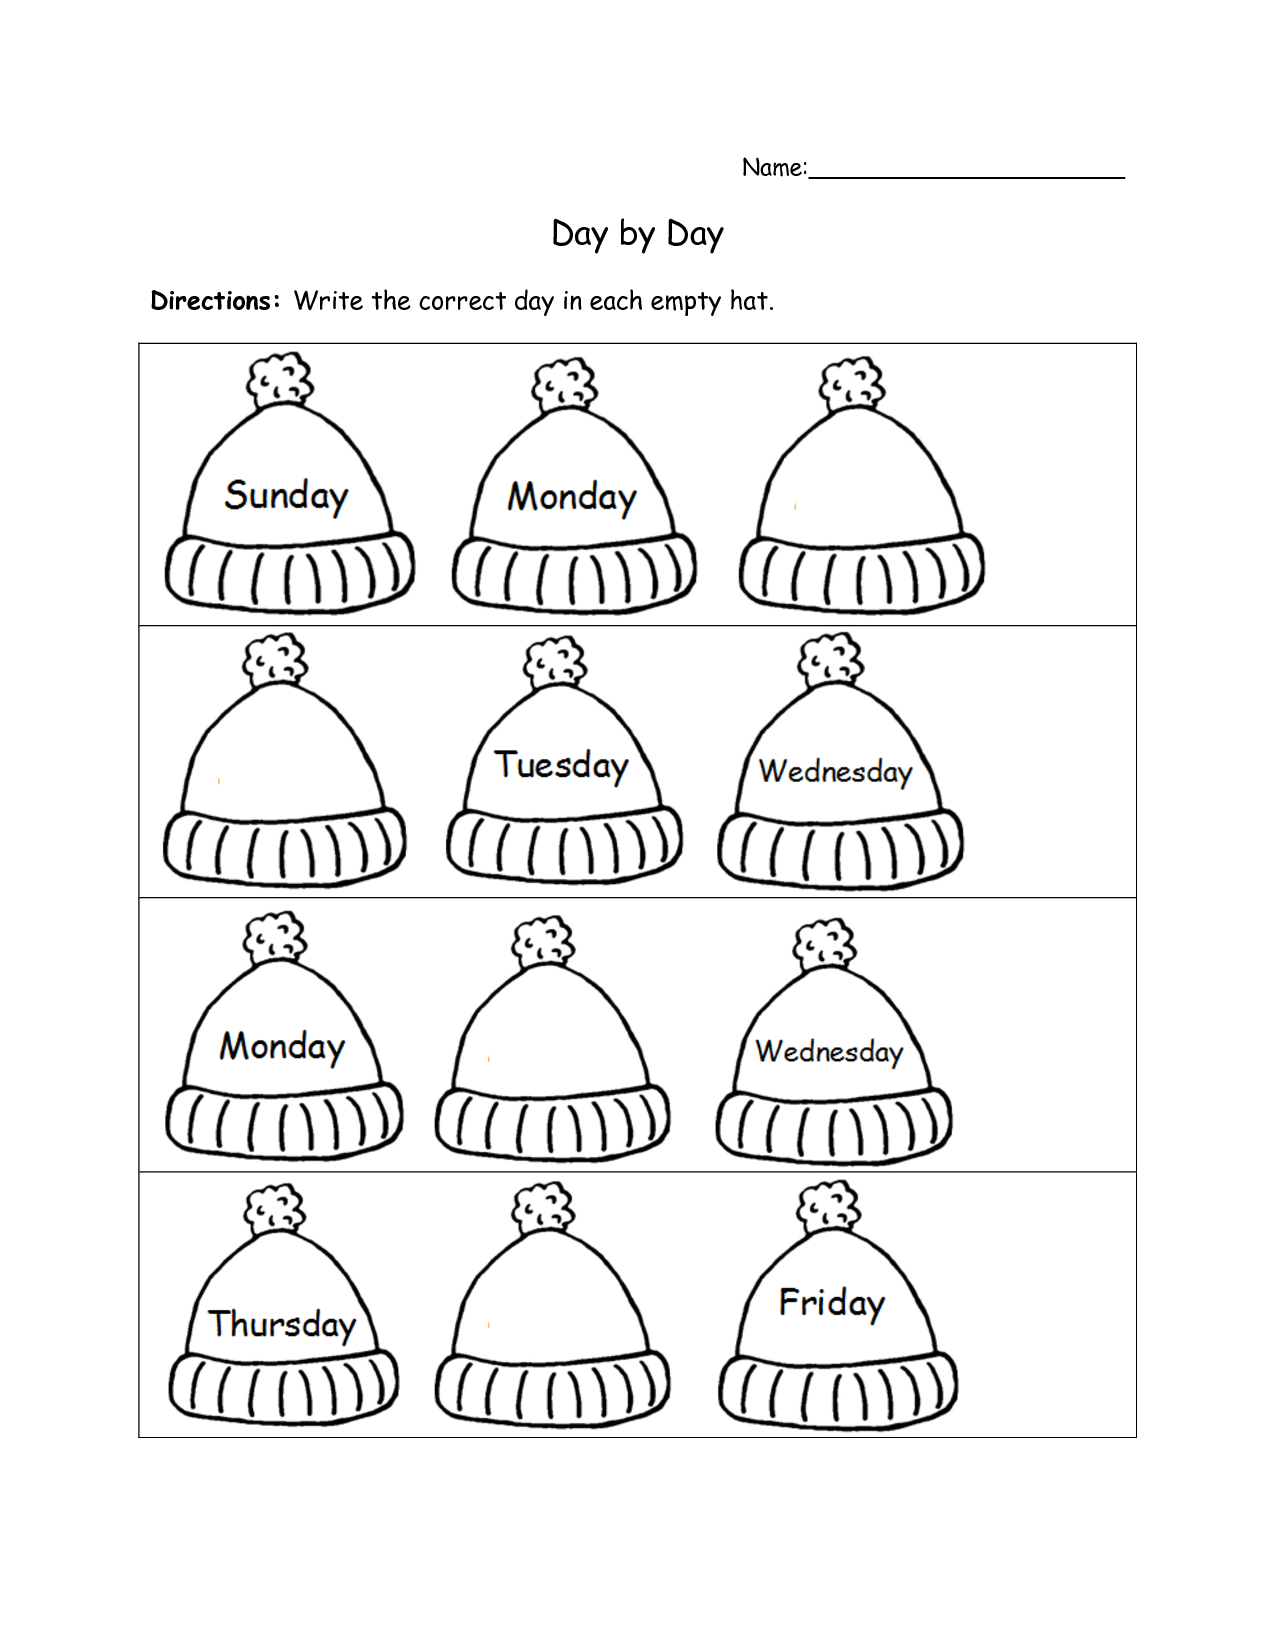 printable days of the week worksheets for kids – Days of the Week Kindergarten Worksheets